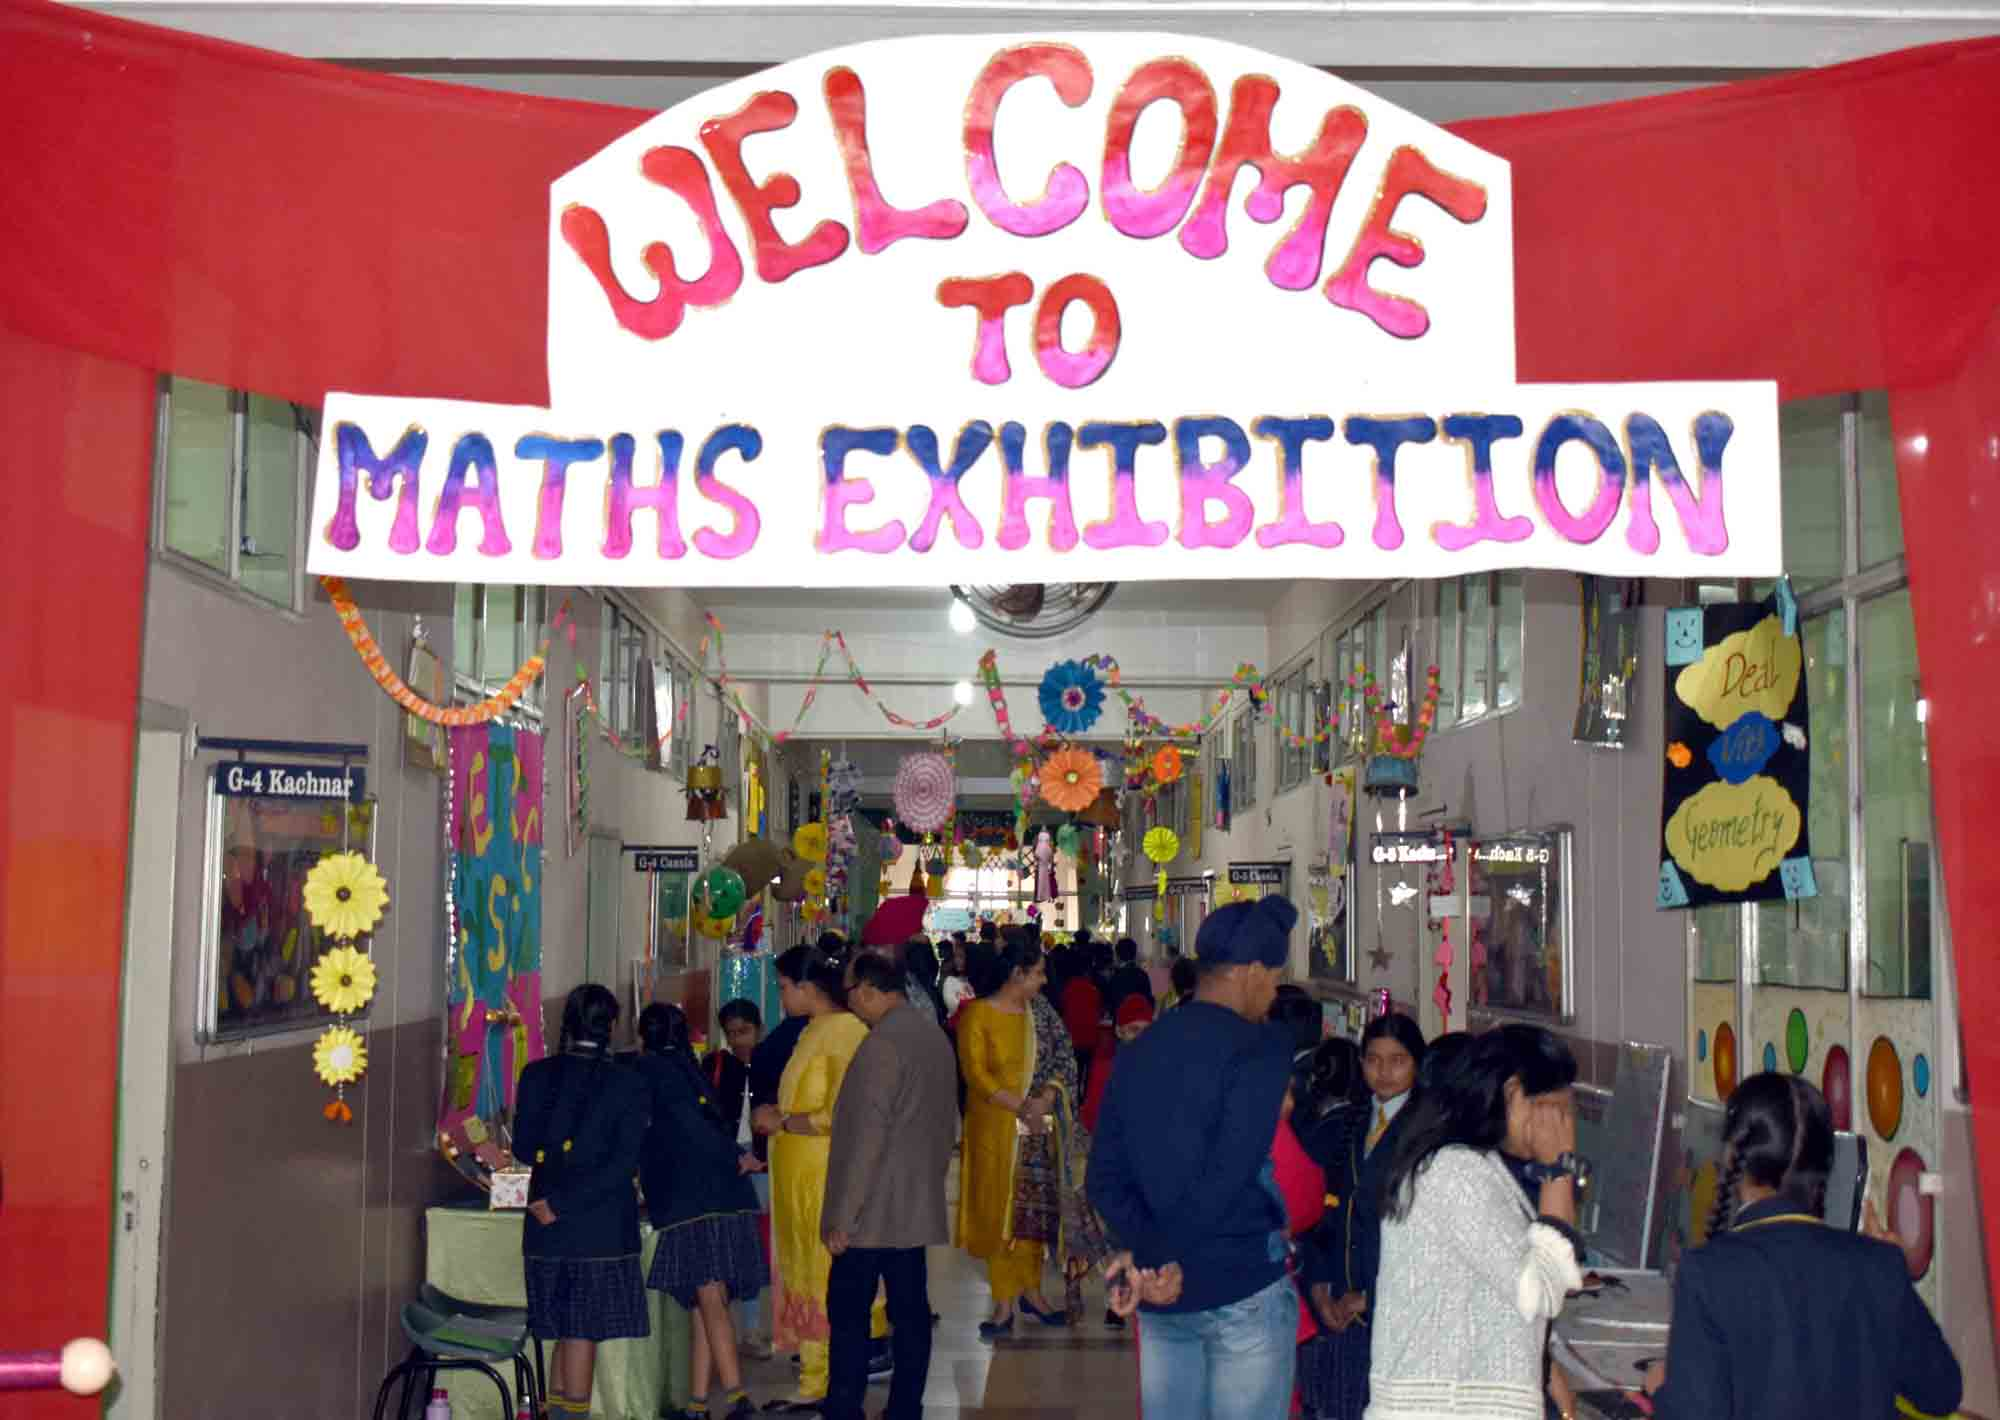 MATHS EXHIBITION CONDUCTED BY GRADE 4/5 MATHEMATICIANS